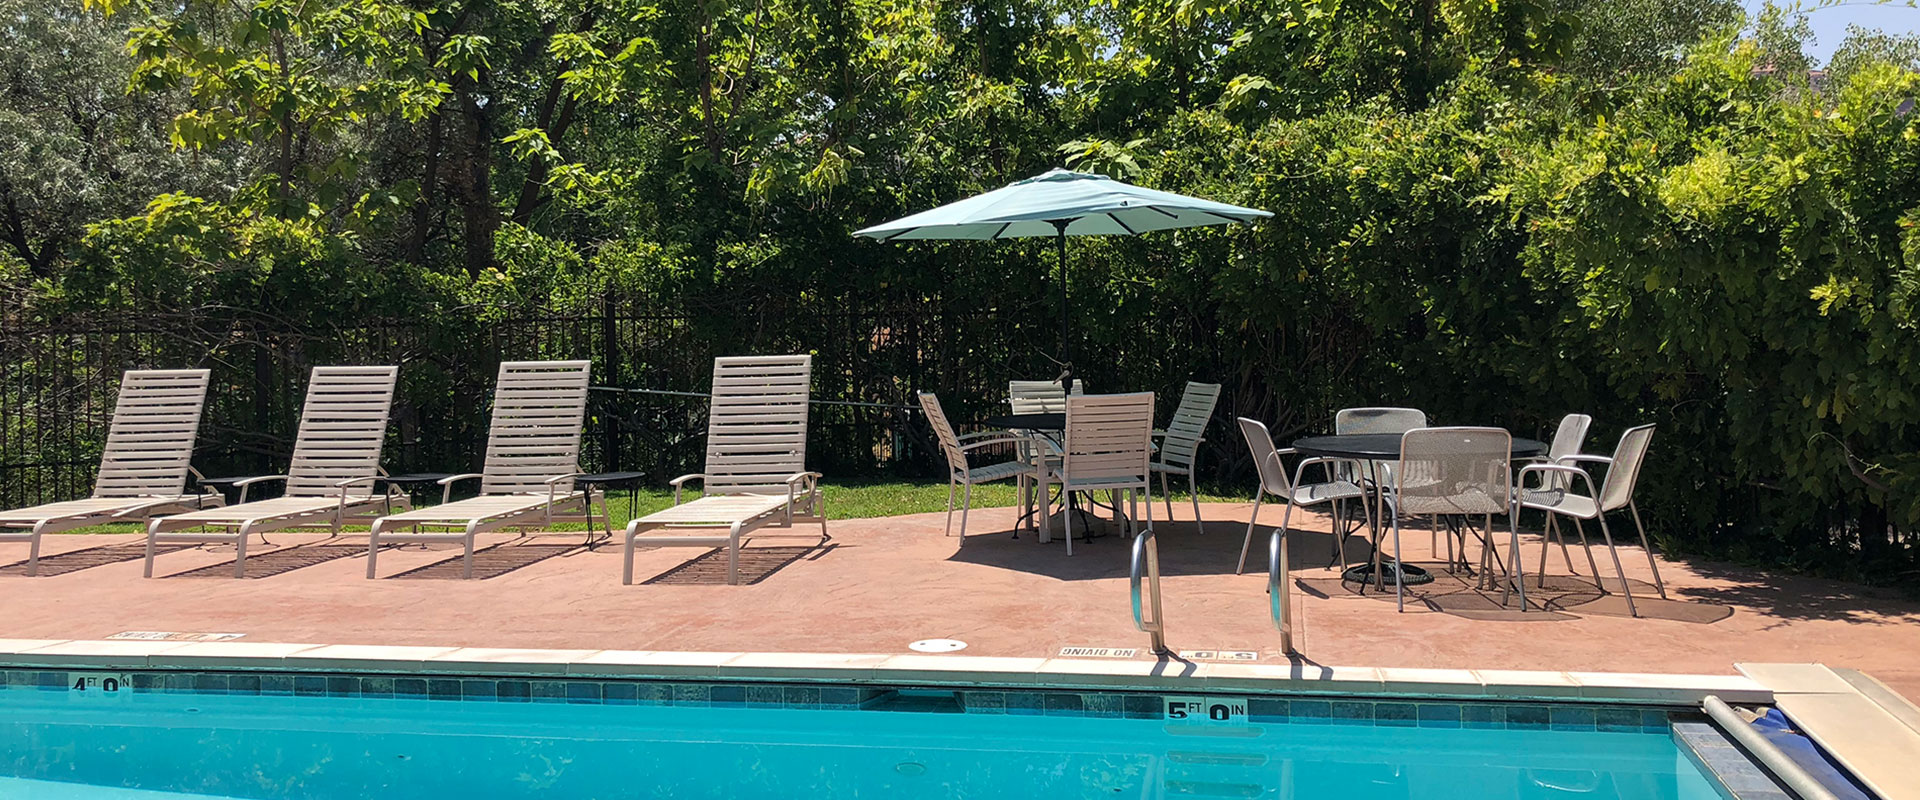 The swimming pool area at Moab Springs Ranch is surrounded by black steel rod fencing with multitudes of purple wisteria flowers lazily dangling over.